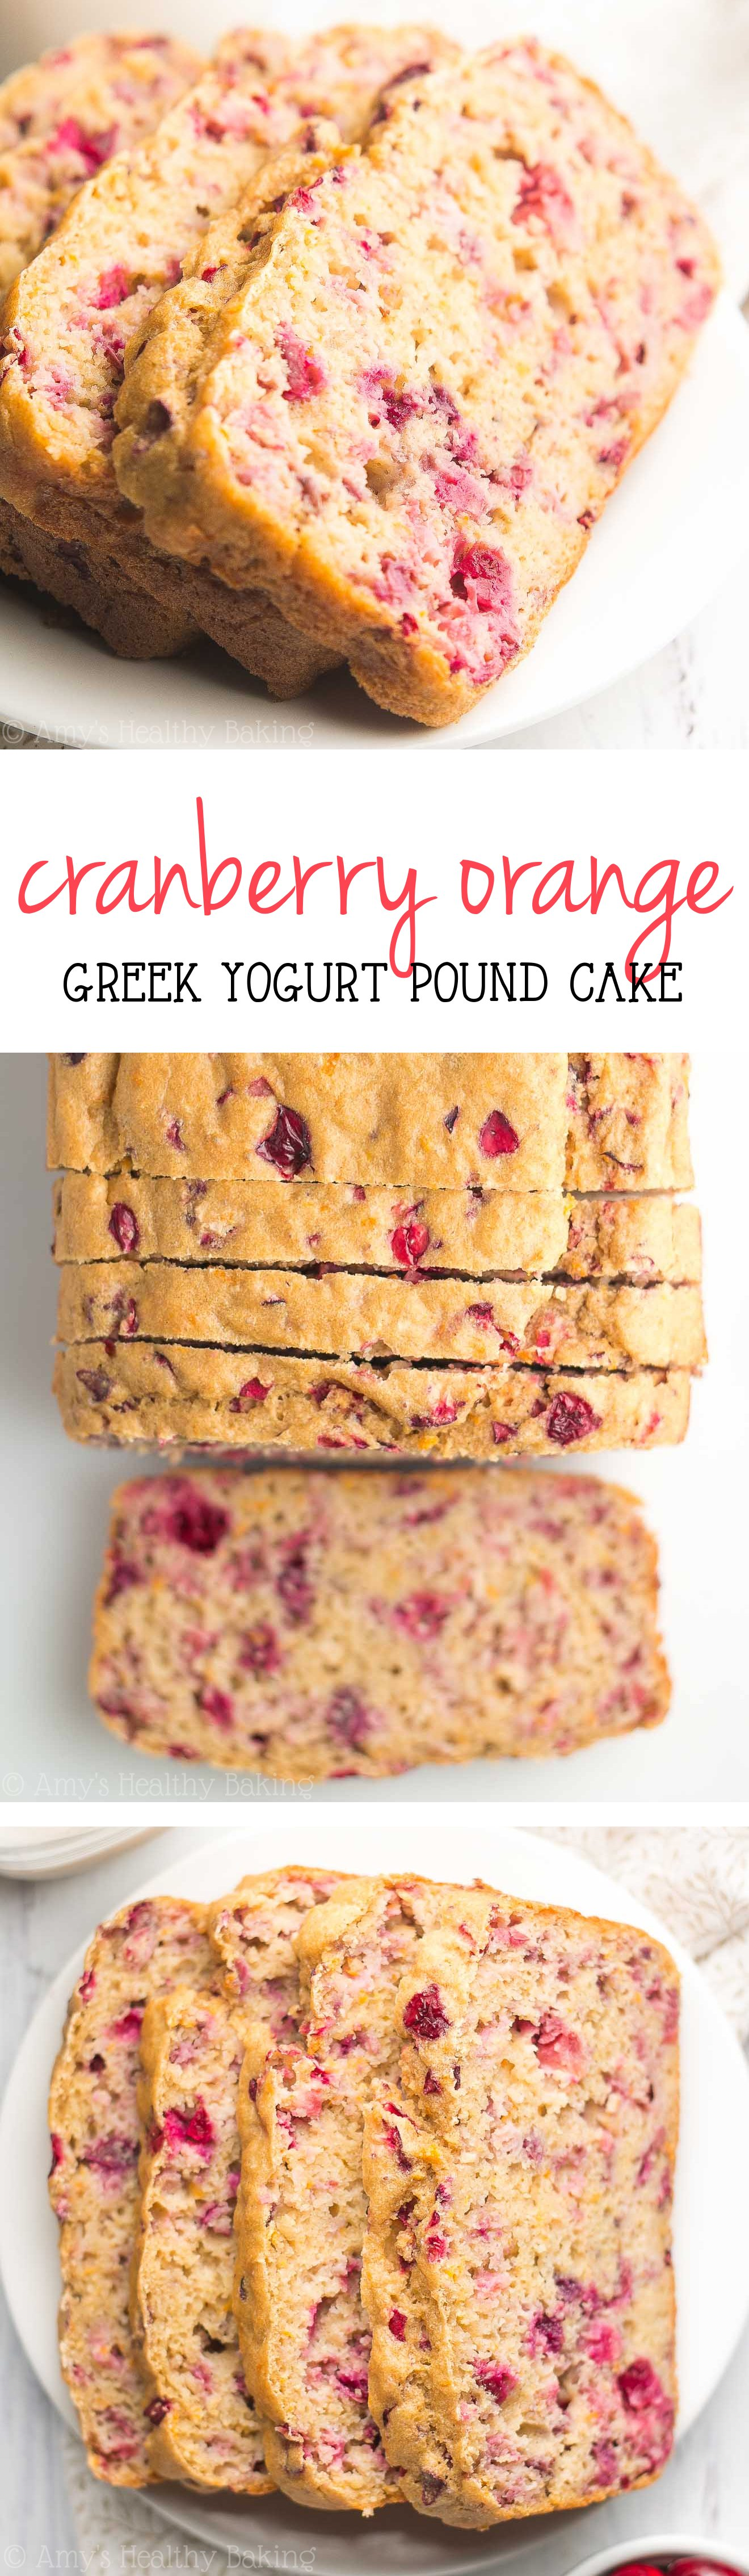 Healthy Greek Yogurt Cranberry Orange Pound Cake -- just 131 calories + nearly 7g protein! This easy recipe is SO good & secretly healthy enough for breakfast!